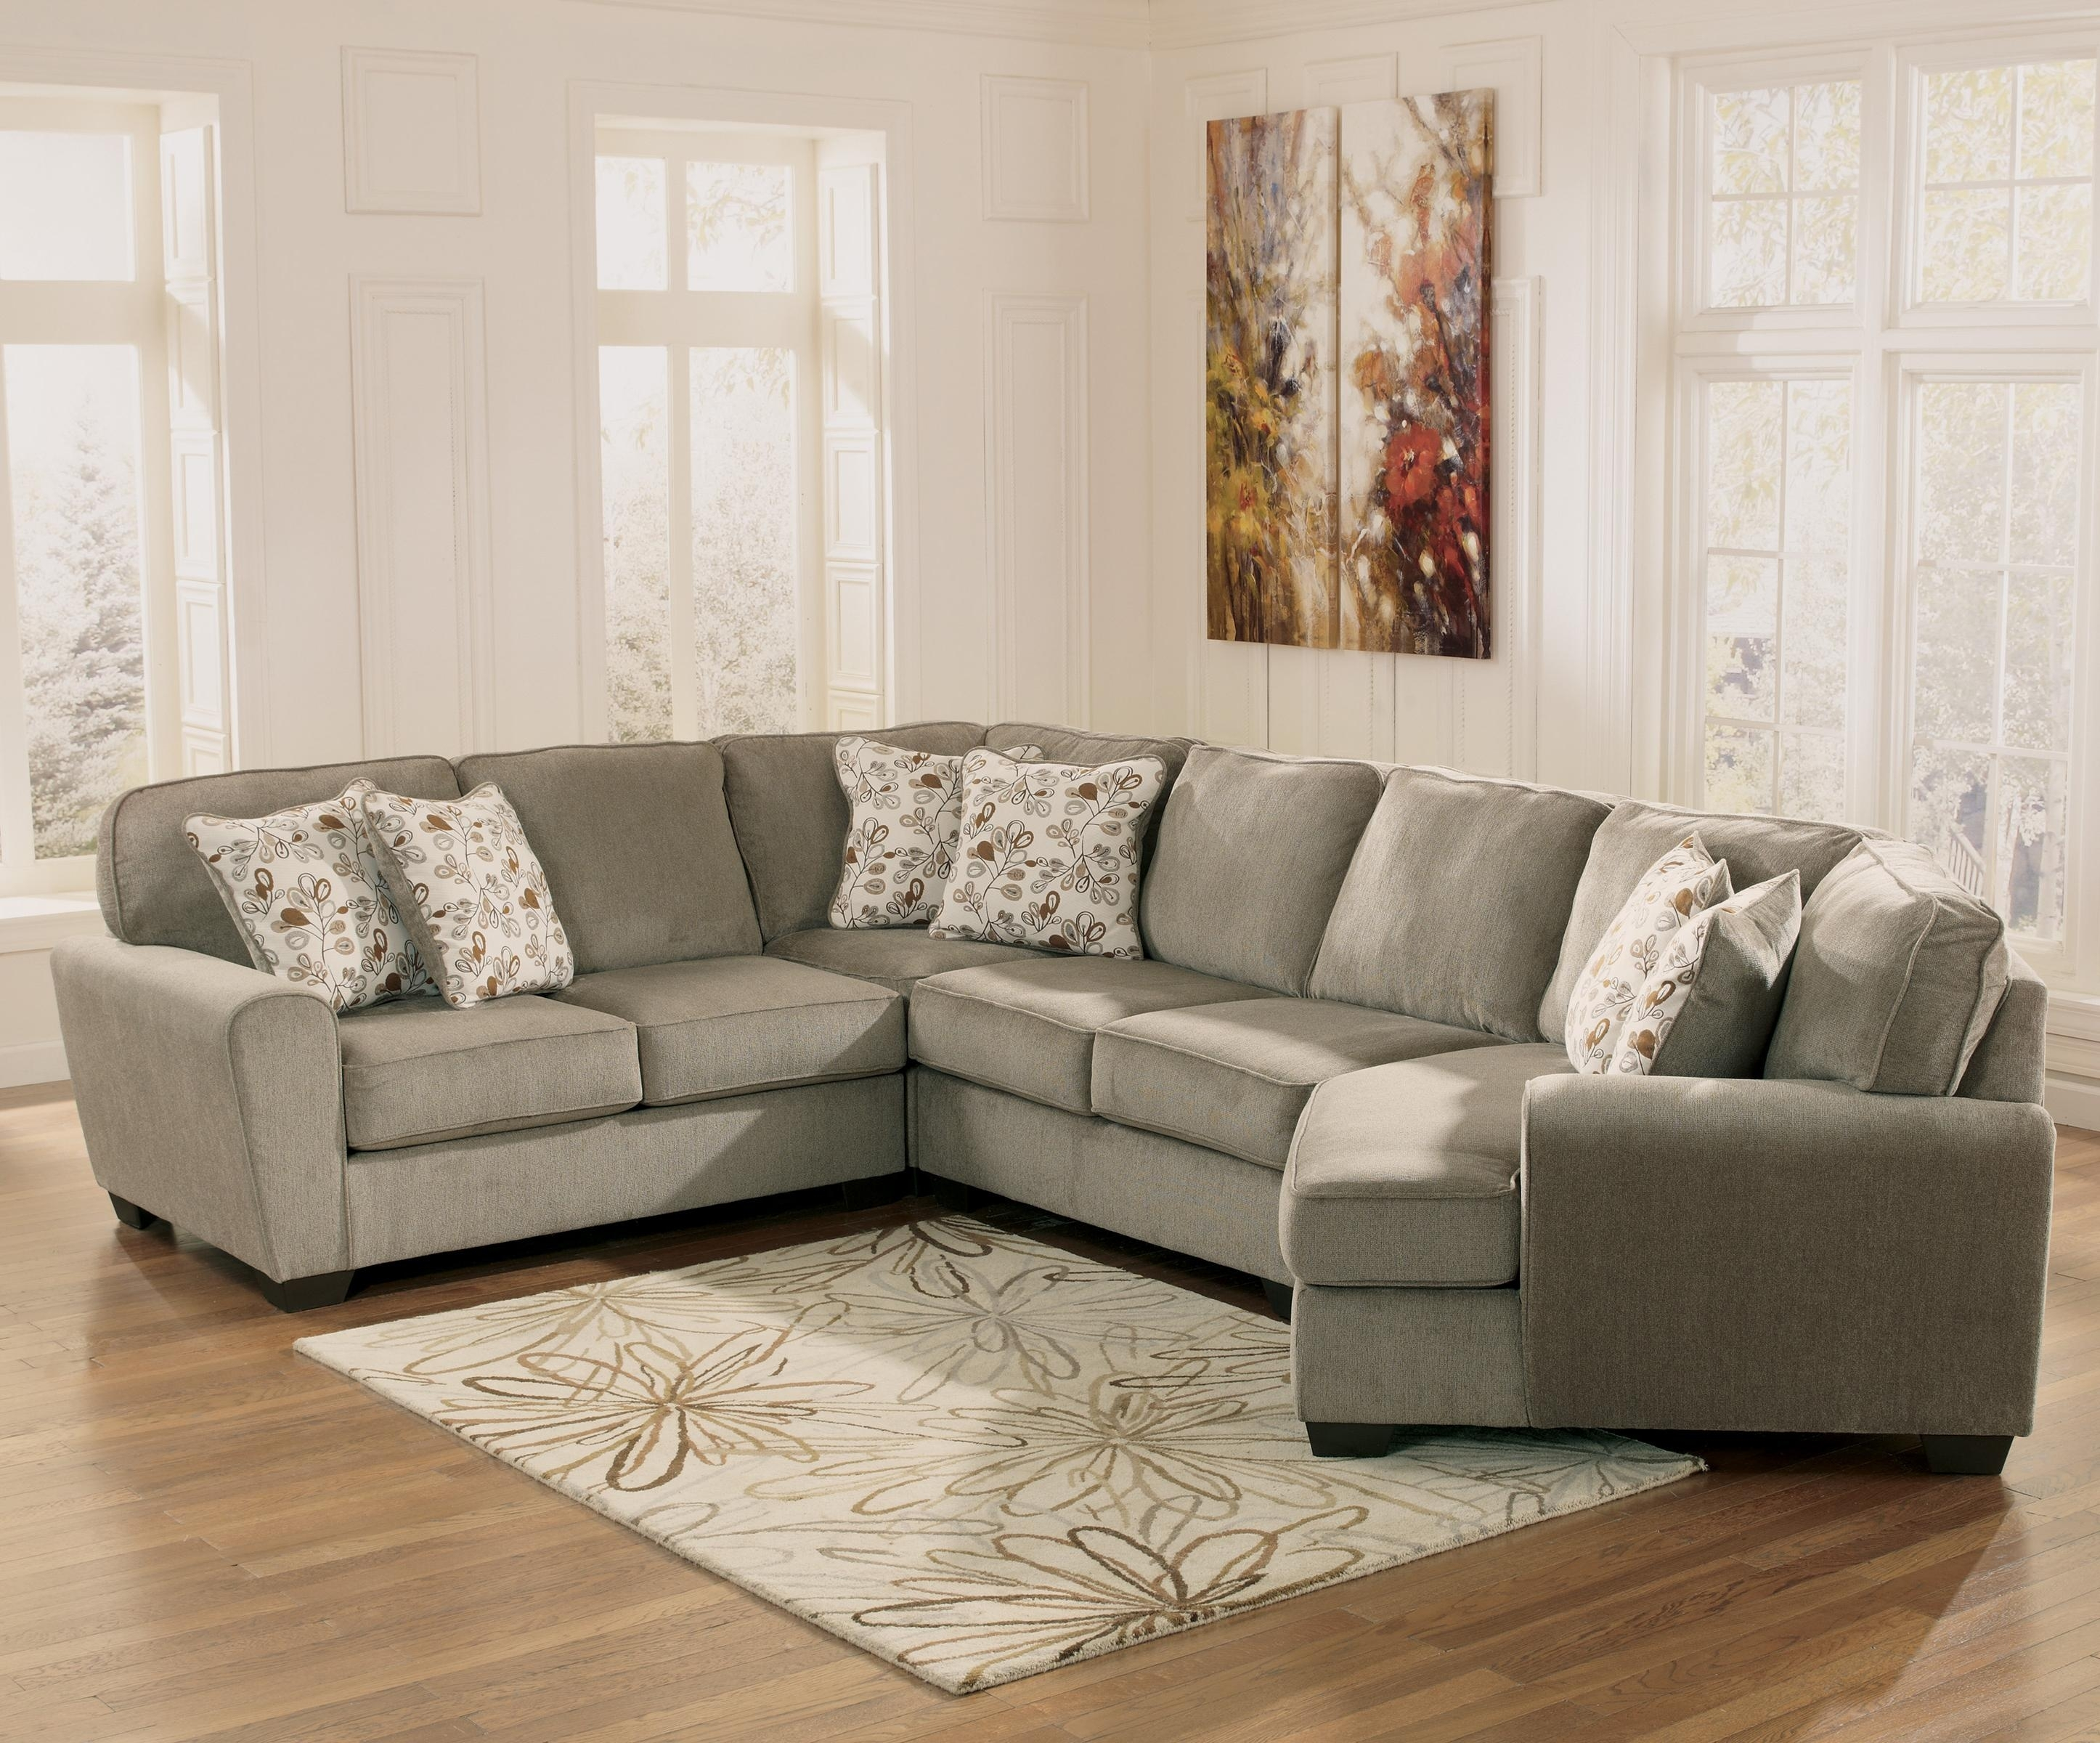 Patina 4 Piece Small Sectional With Right Cuddler | Rotmans | Sofa Intended For Cuddler Sectional Sofas (Image 7 of 10)